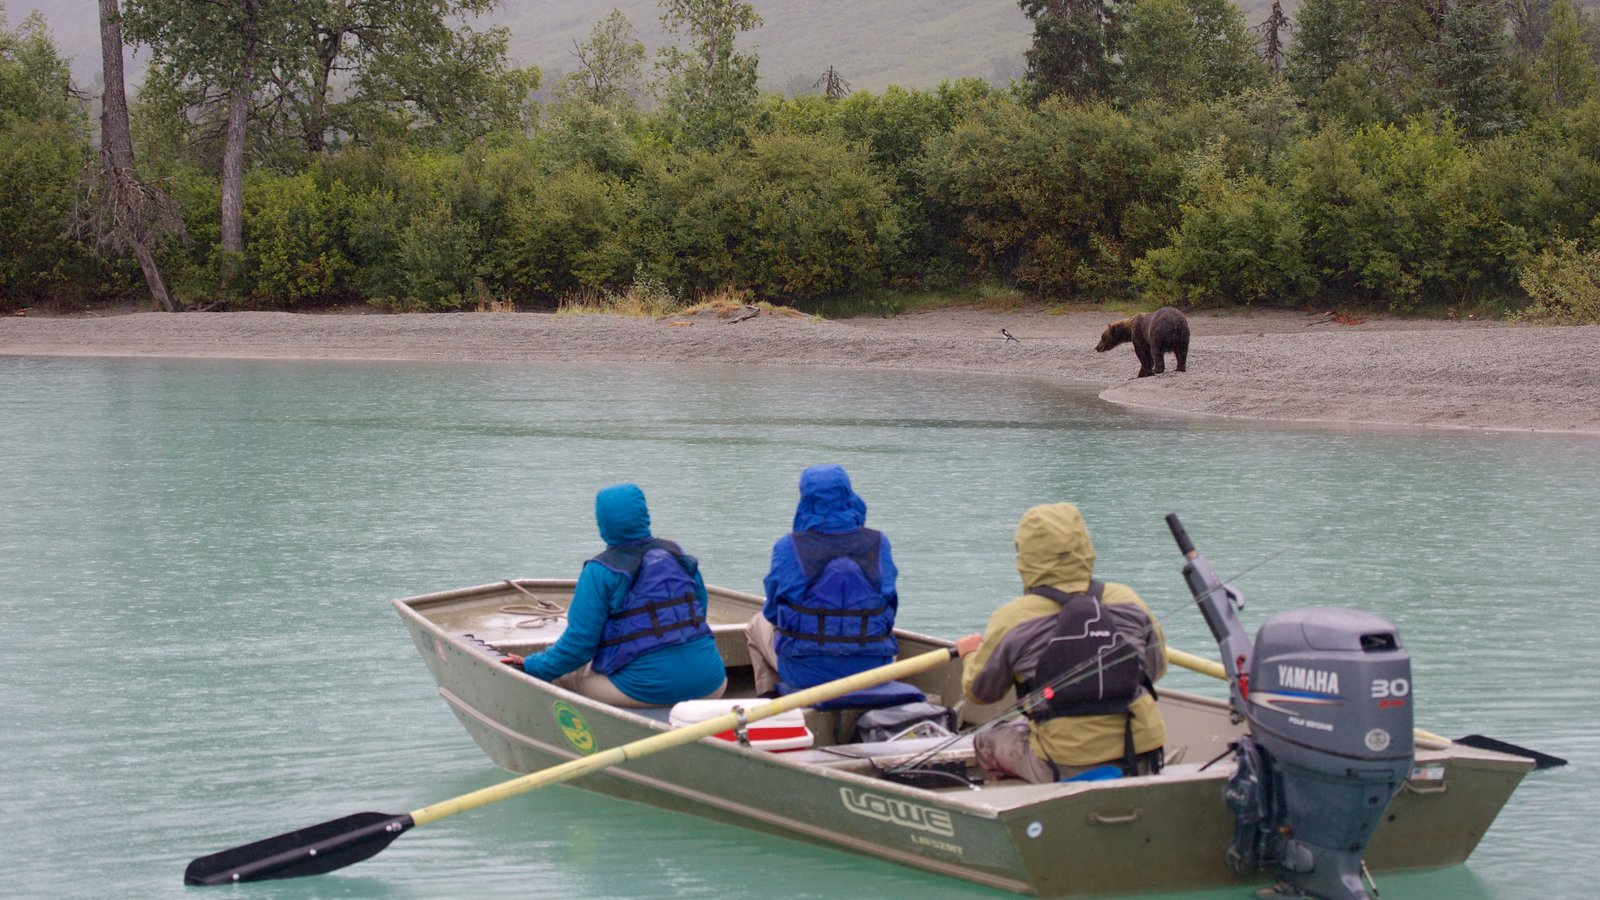 Lake Clark National Park and Preserve featuring dangerous animals, boating and land animals